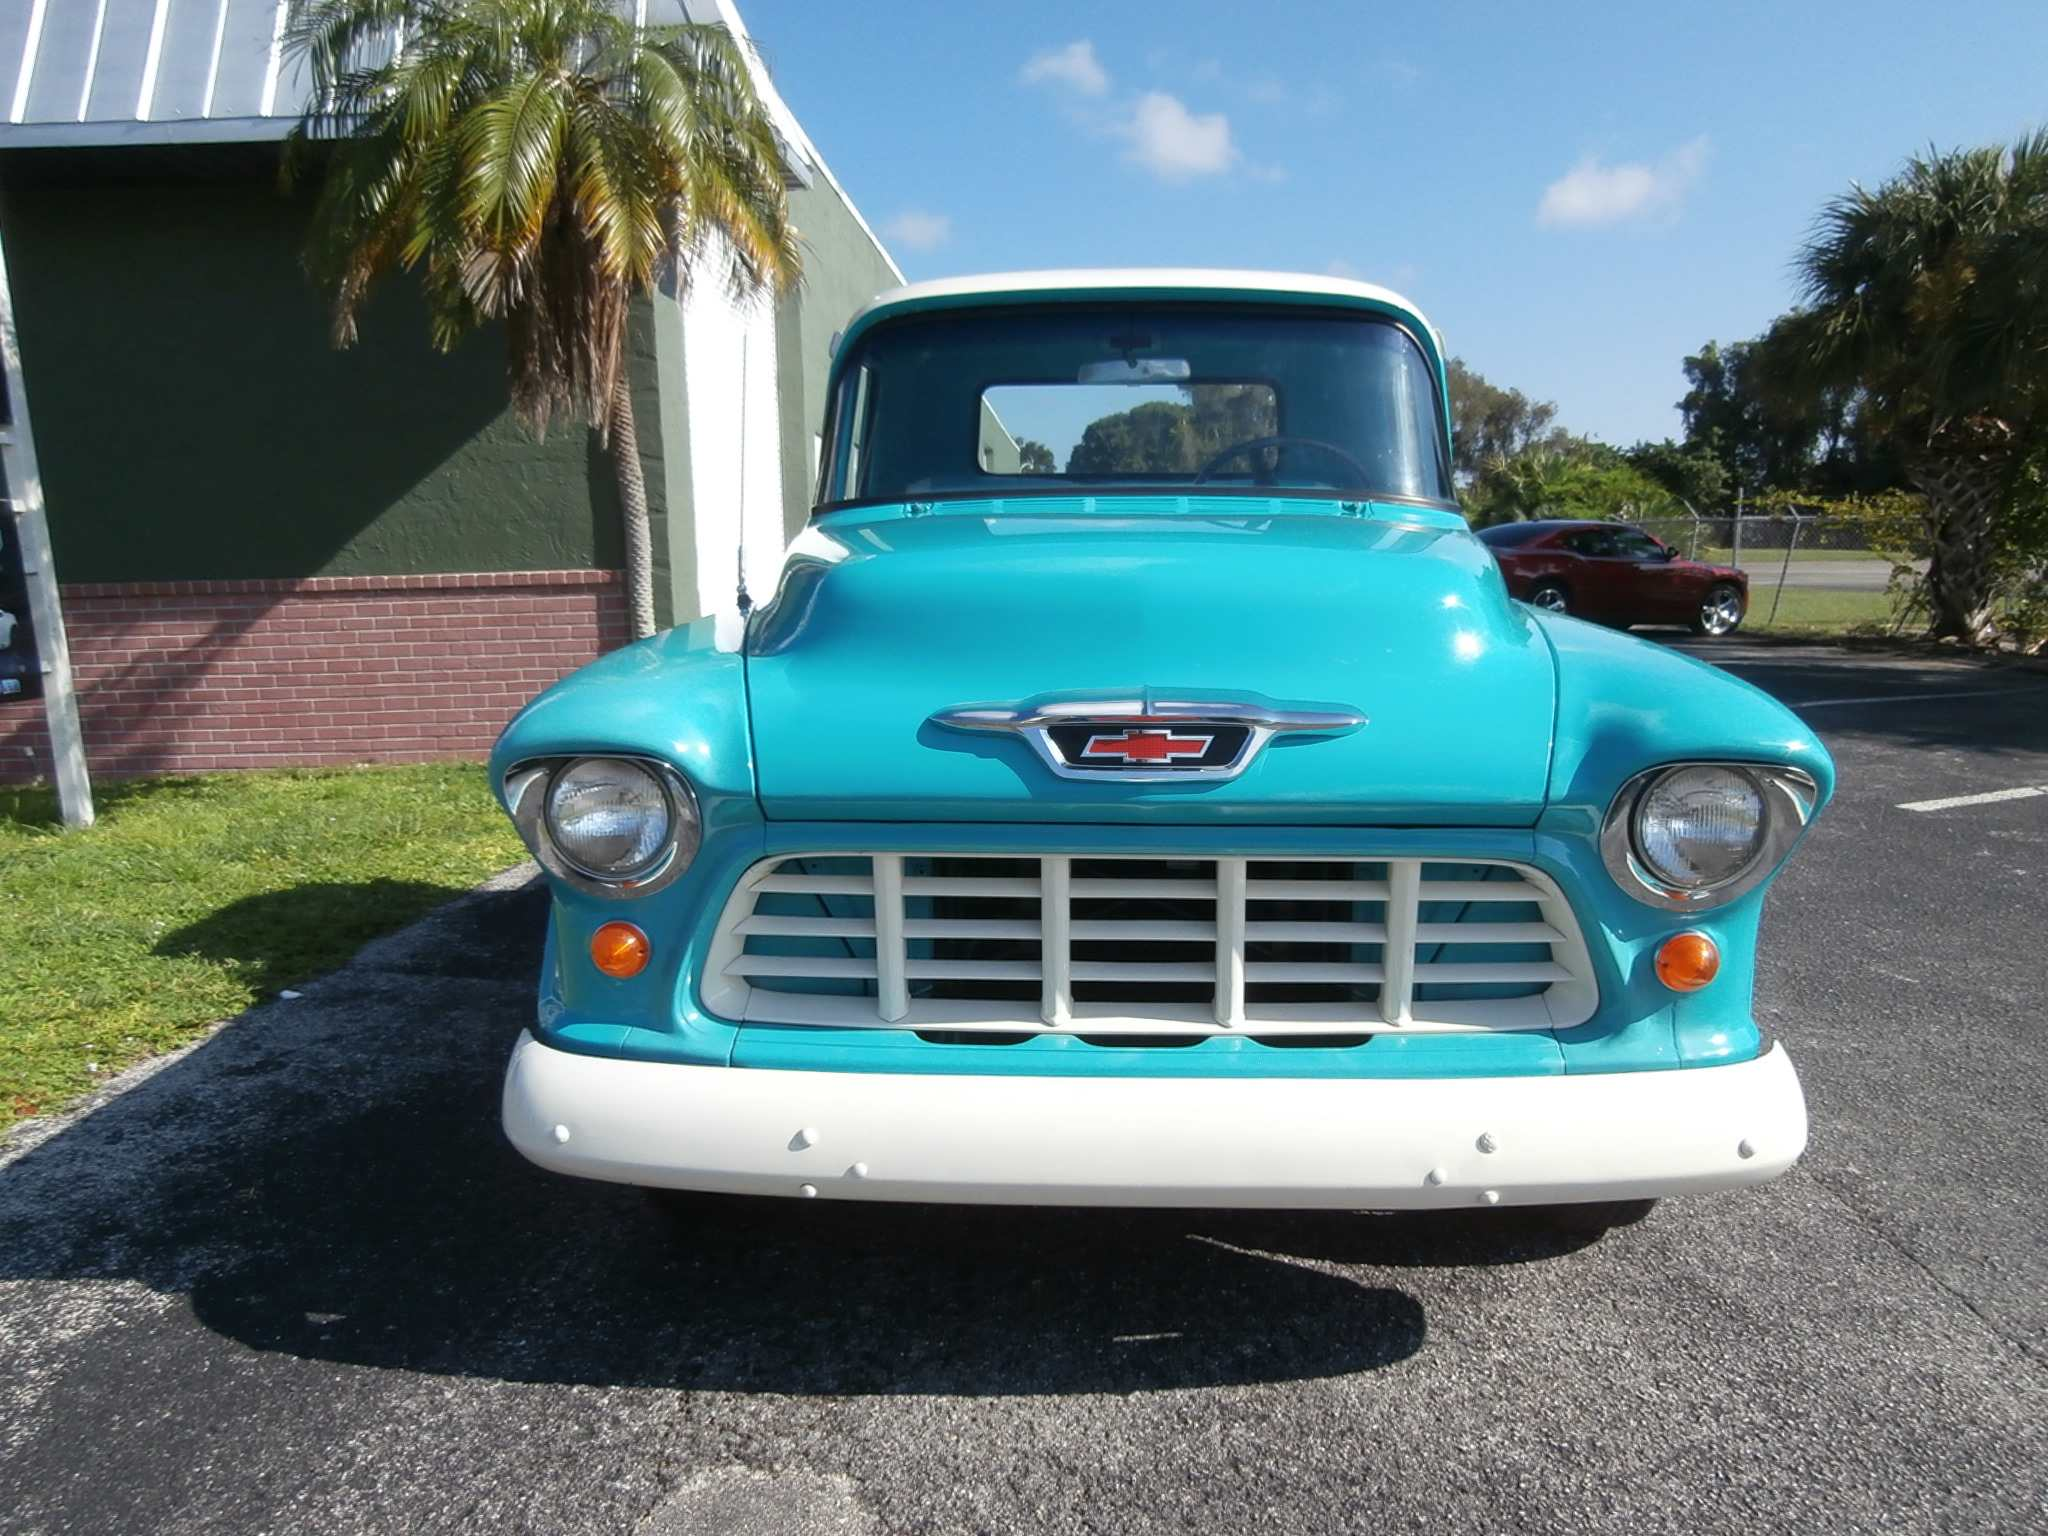 CHEVY PICKUP 3100